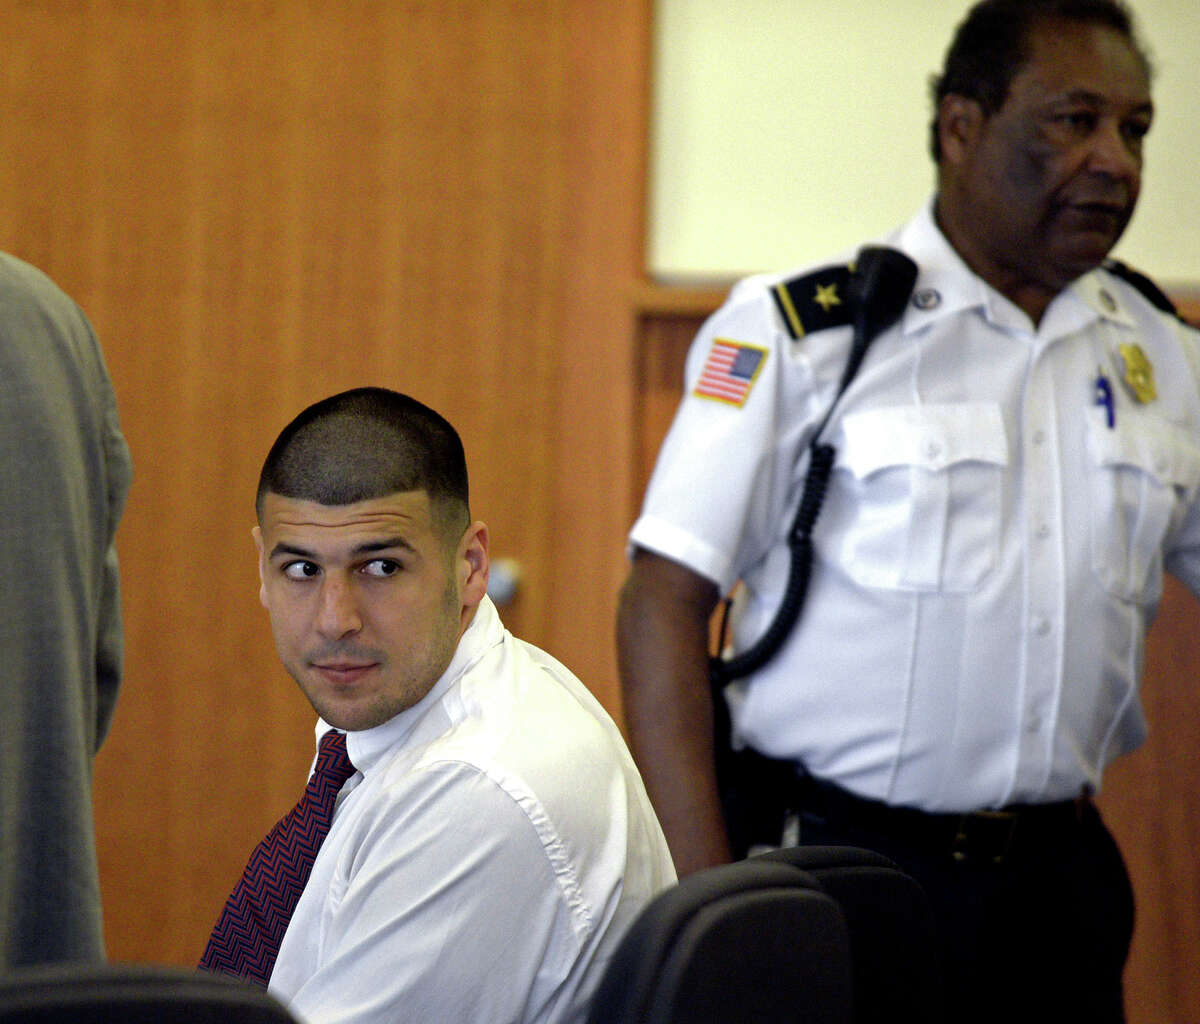 Aaron Hernandez looks back during a Sept. 30 hearing in Fall River Superior Court in Fall River, Mass.